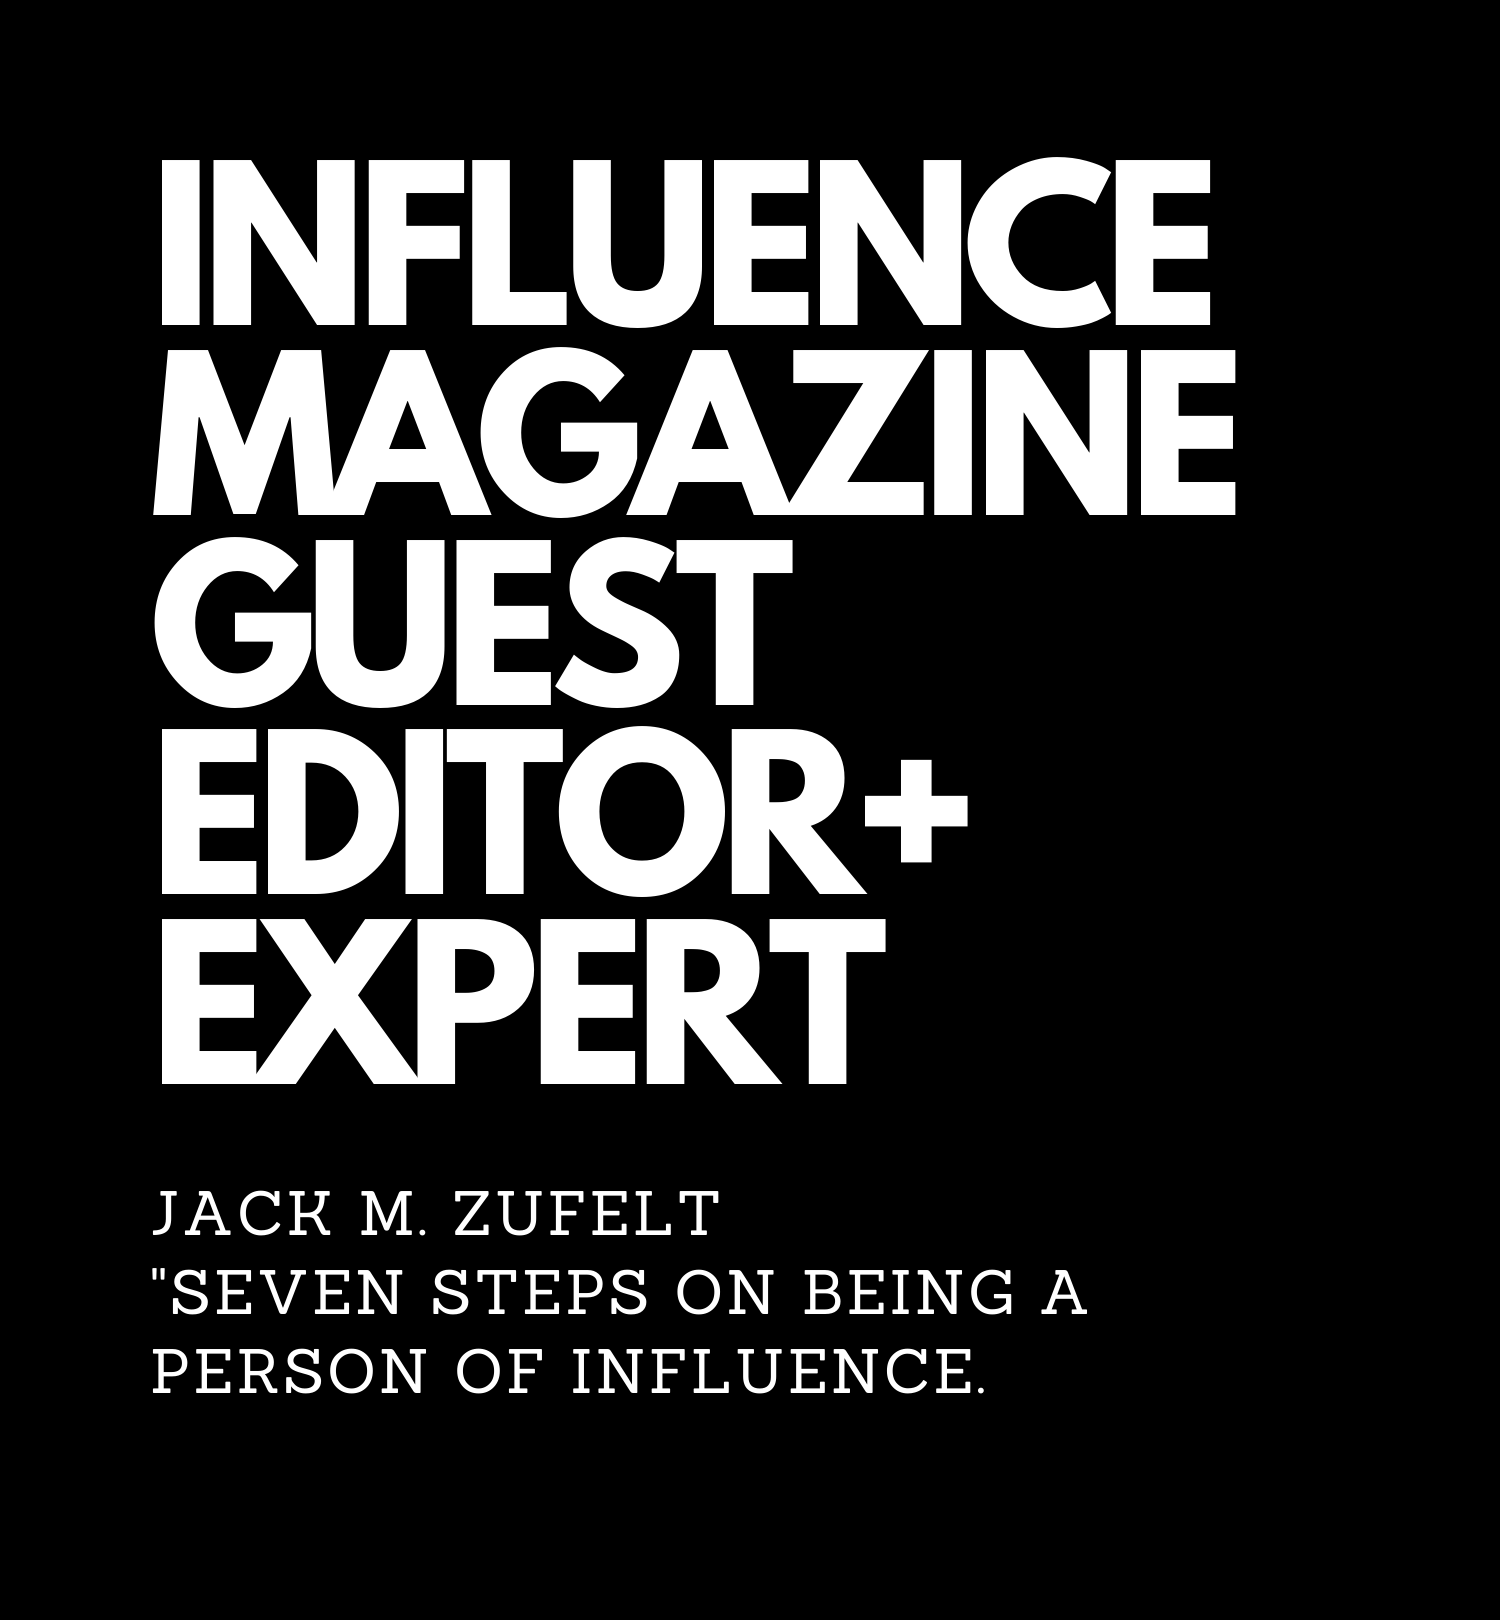 Jack Zufelt: Global Influencer, Best-Selling Author and Influence Magazine 100 Authority shares his insight on success as our Guest Expert+Editor